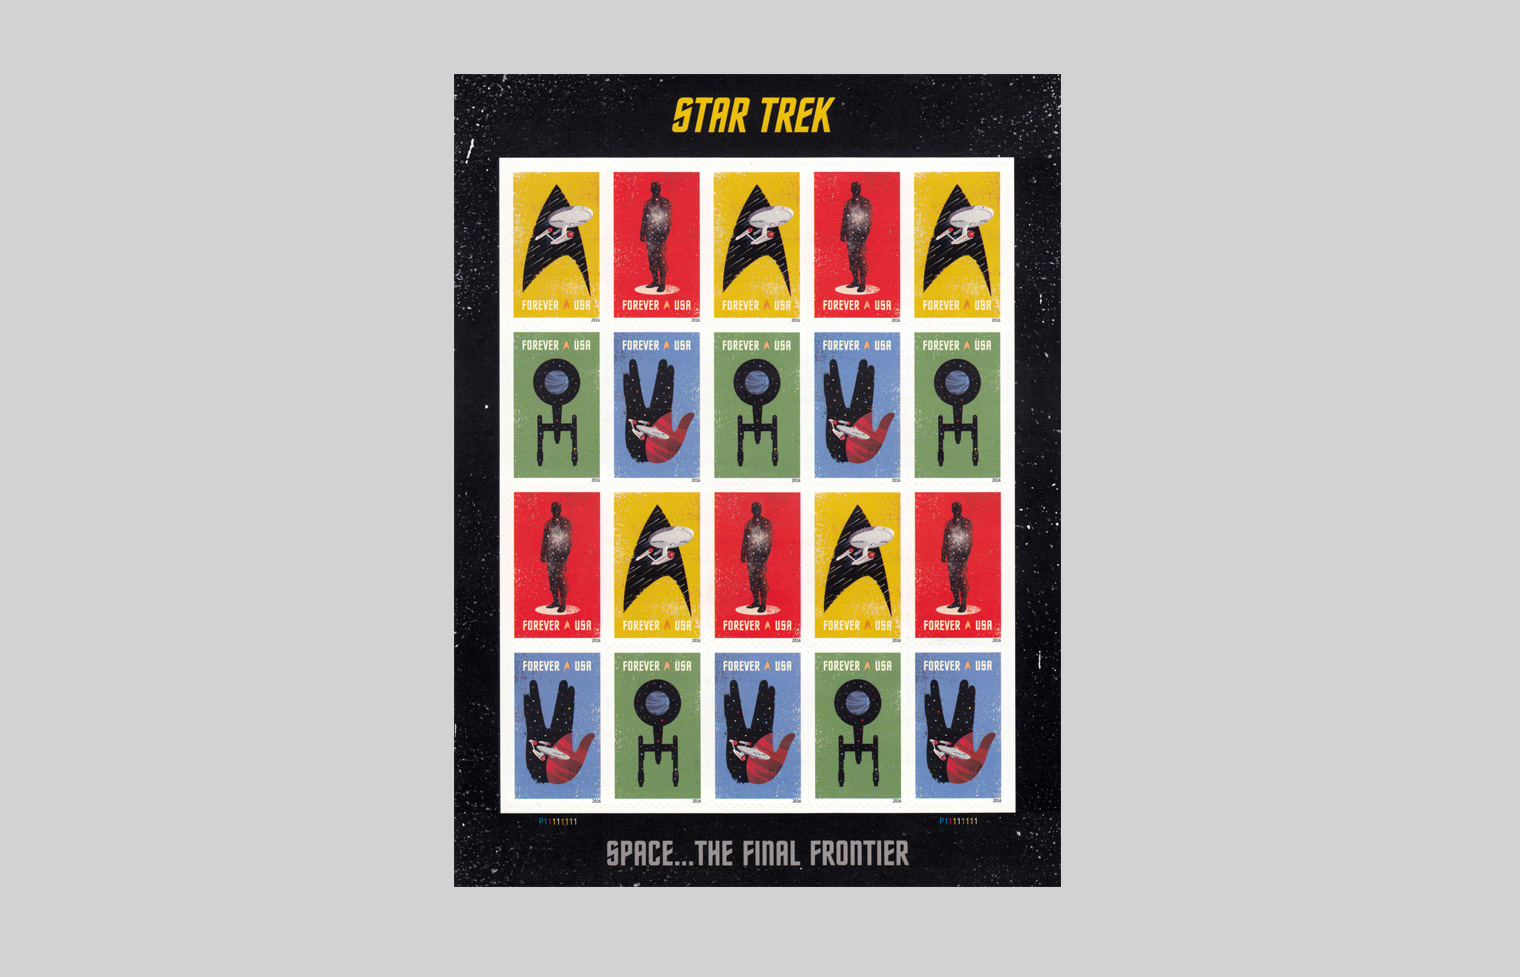 Star Trek stamp sheet.